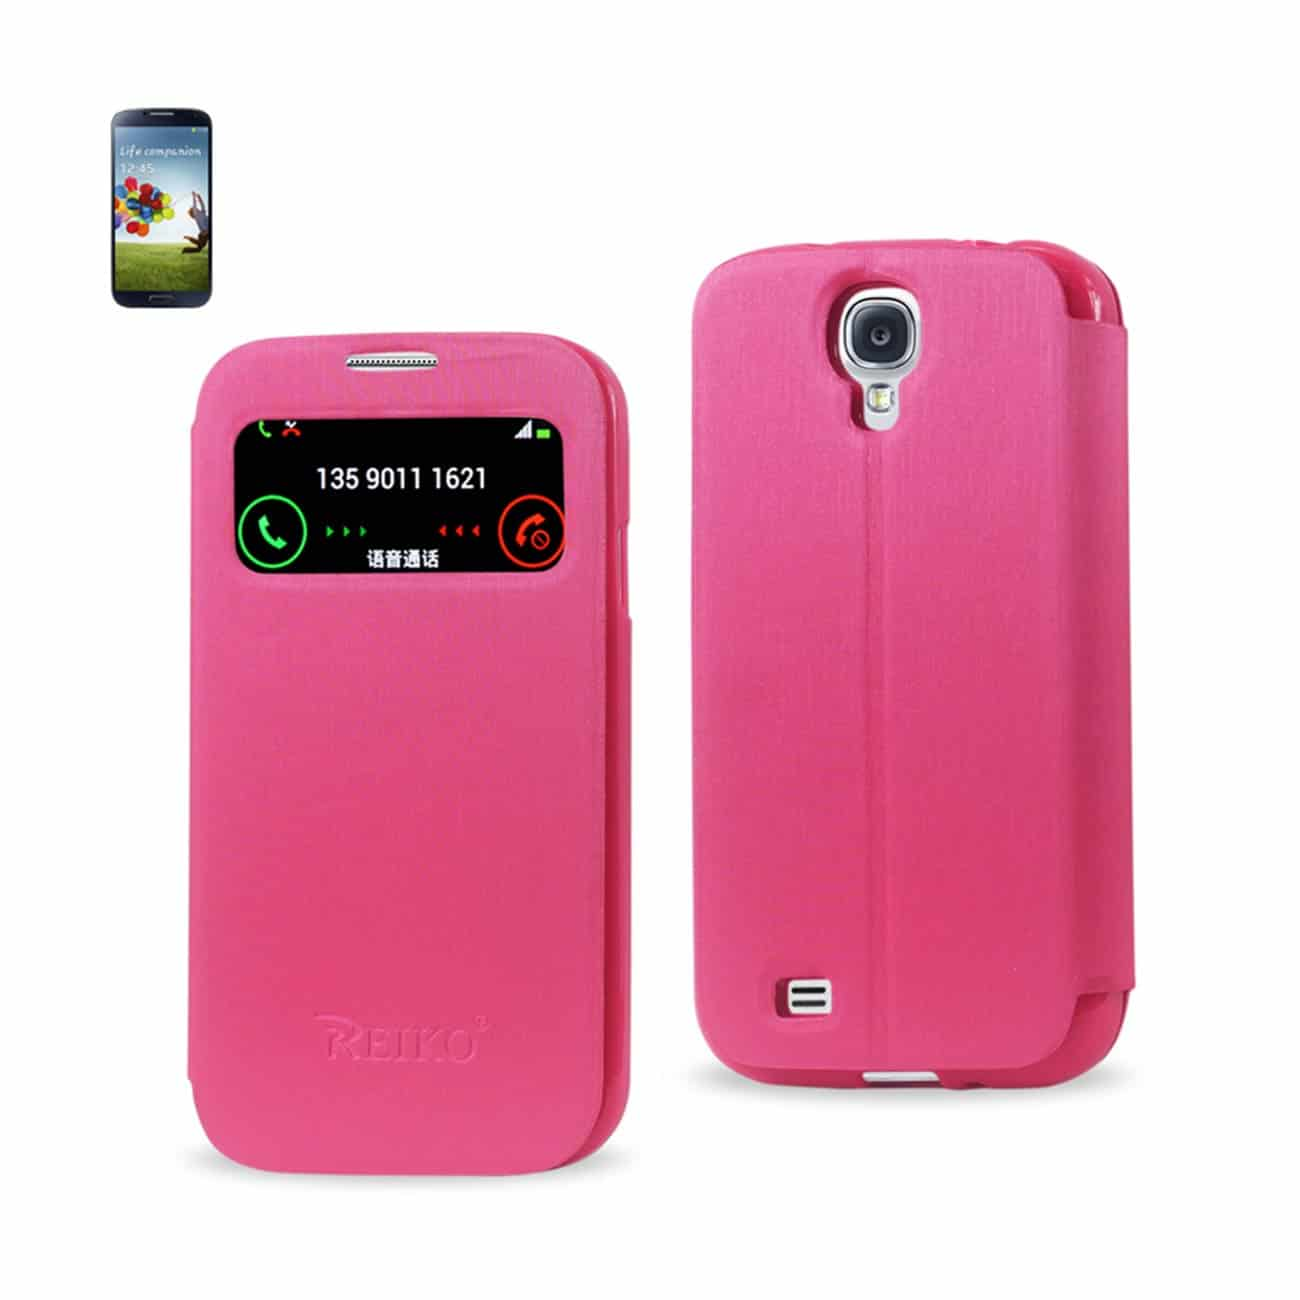 SAMSUNG GALAXY S4 SMART WINDOW FLIP CASE IN HOT PINK